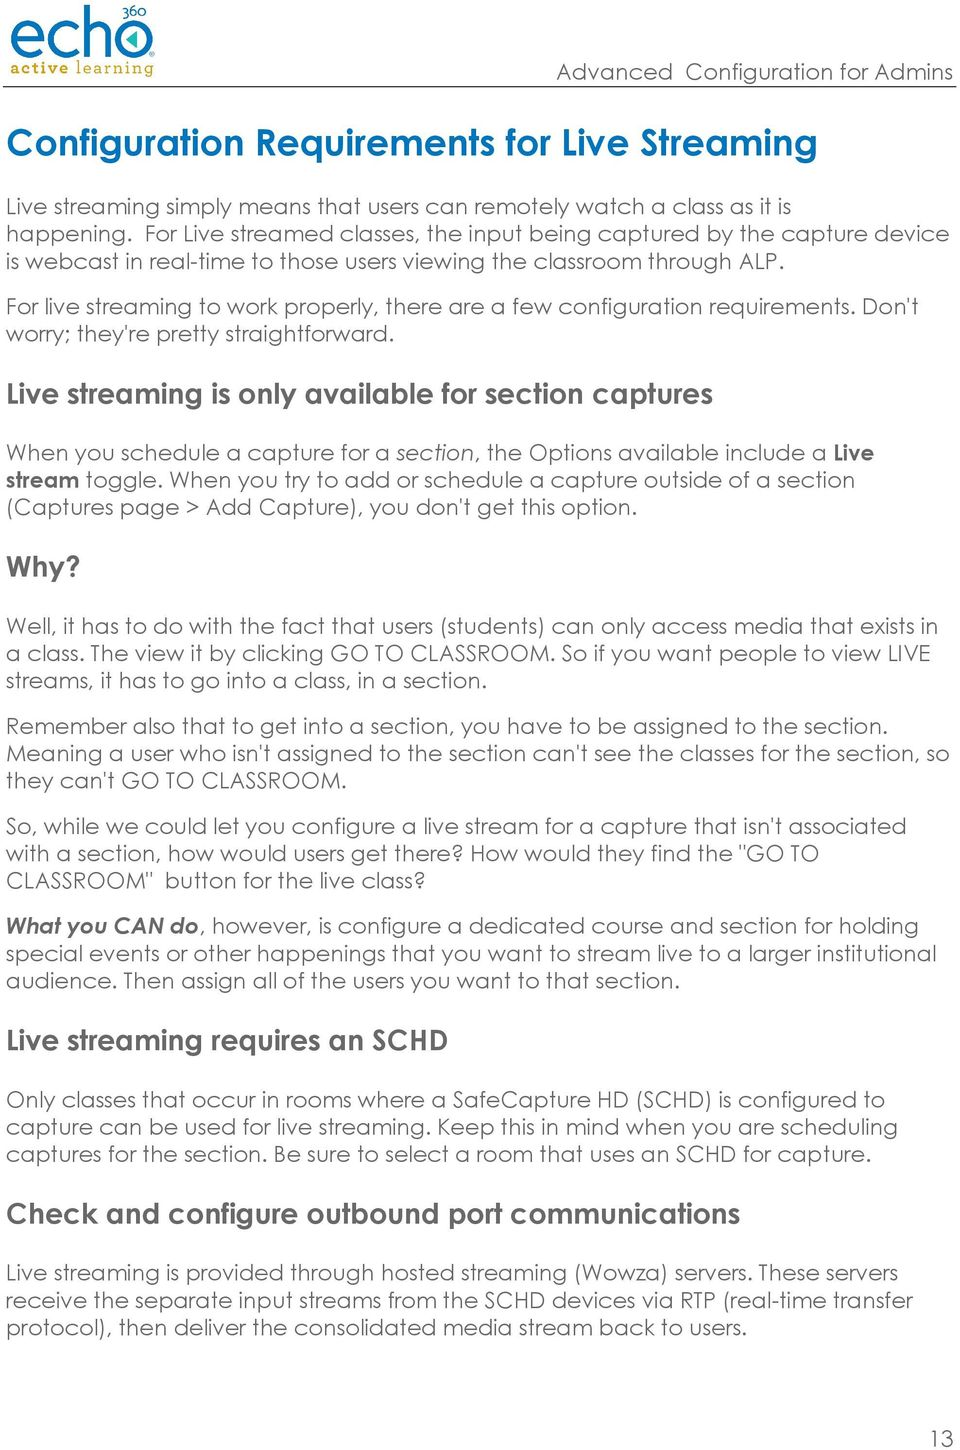 For live streaming to work properly, there are a few configuration requirements. Don't worry; they're pretty straightforward.